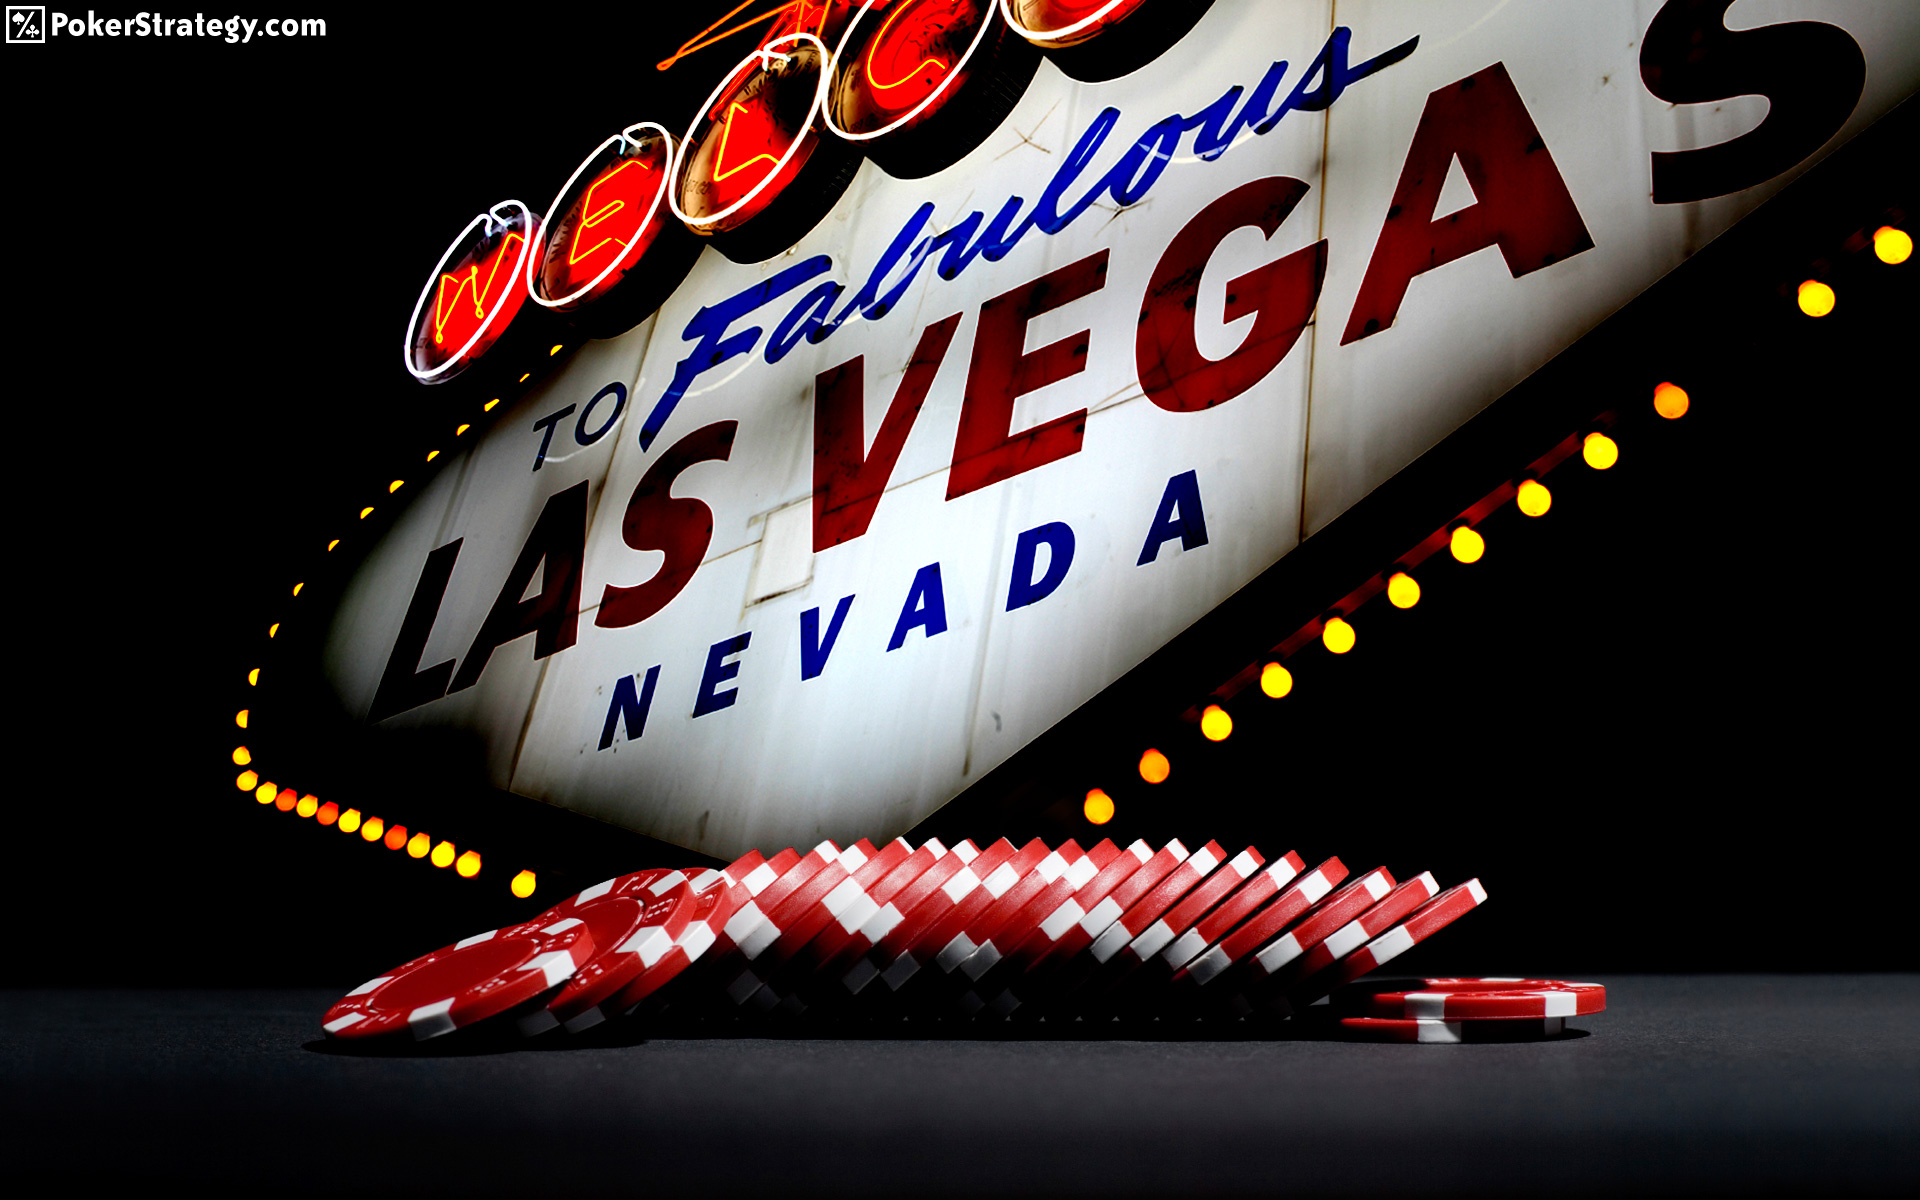 1920x1200 Las Vegas Poker Desktop PC And Mac Wallpaper